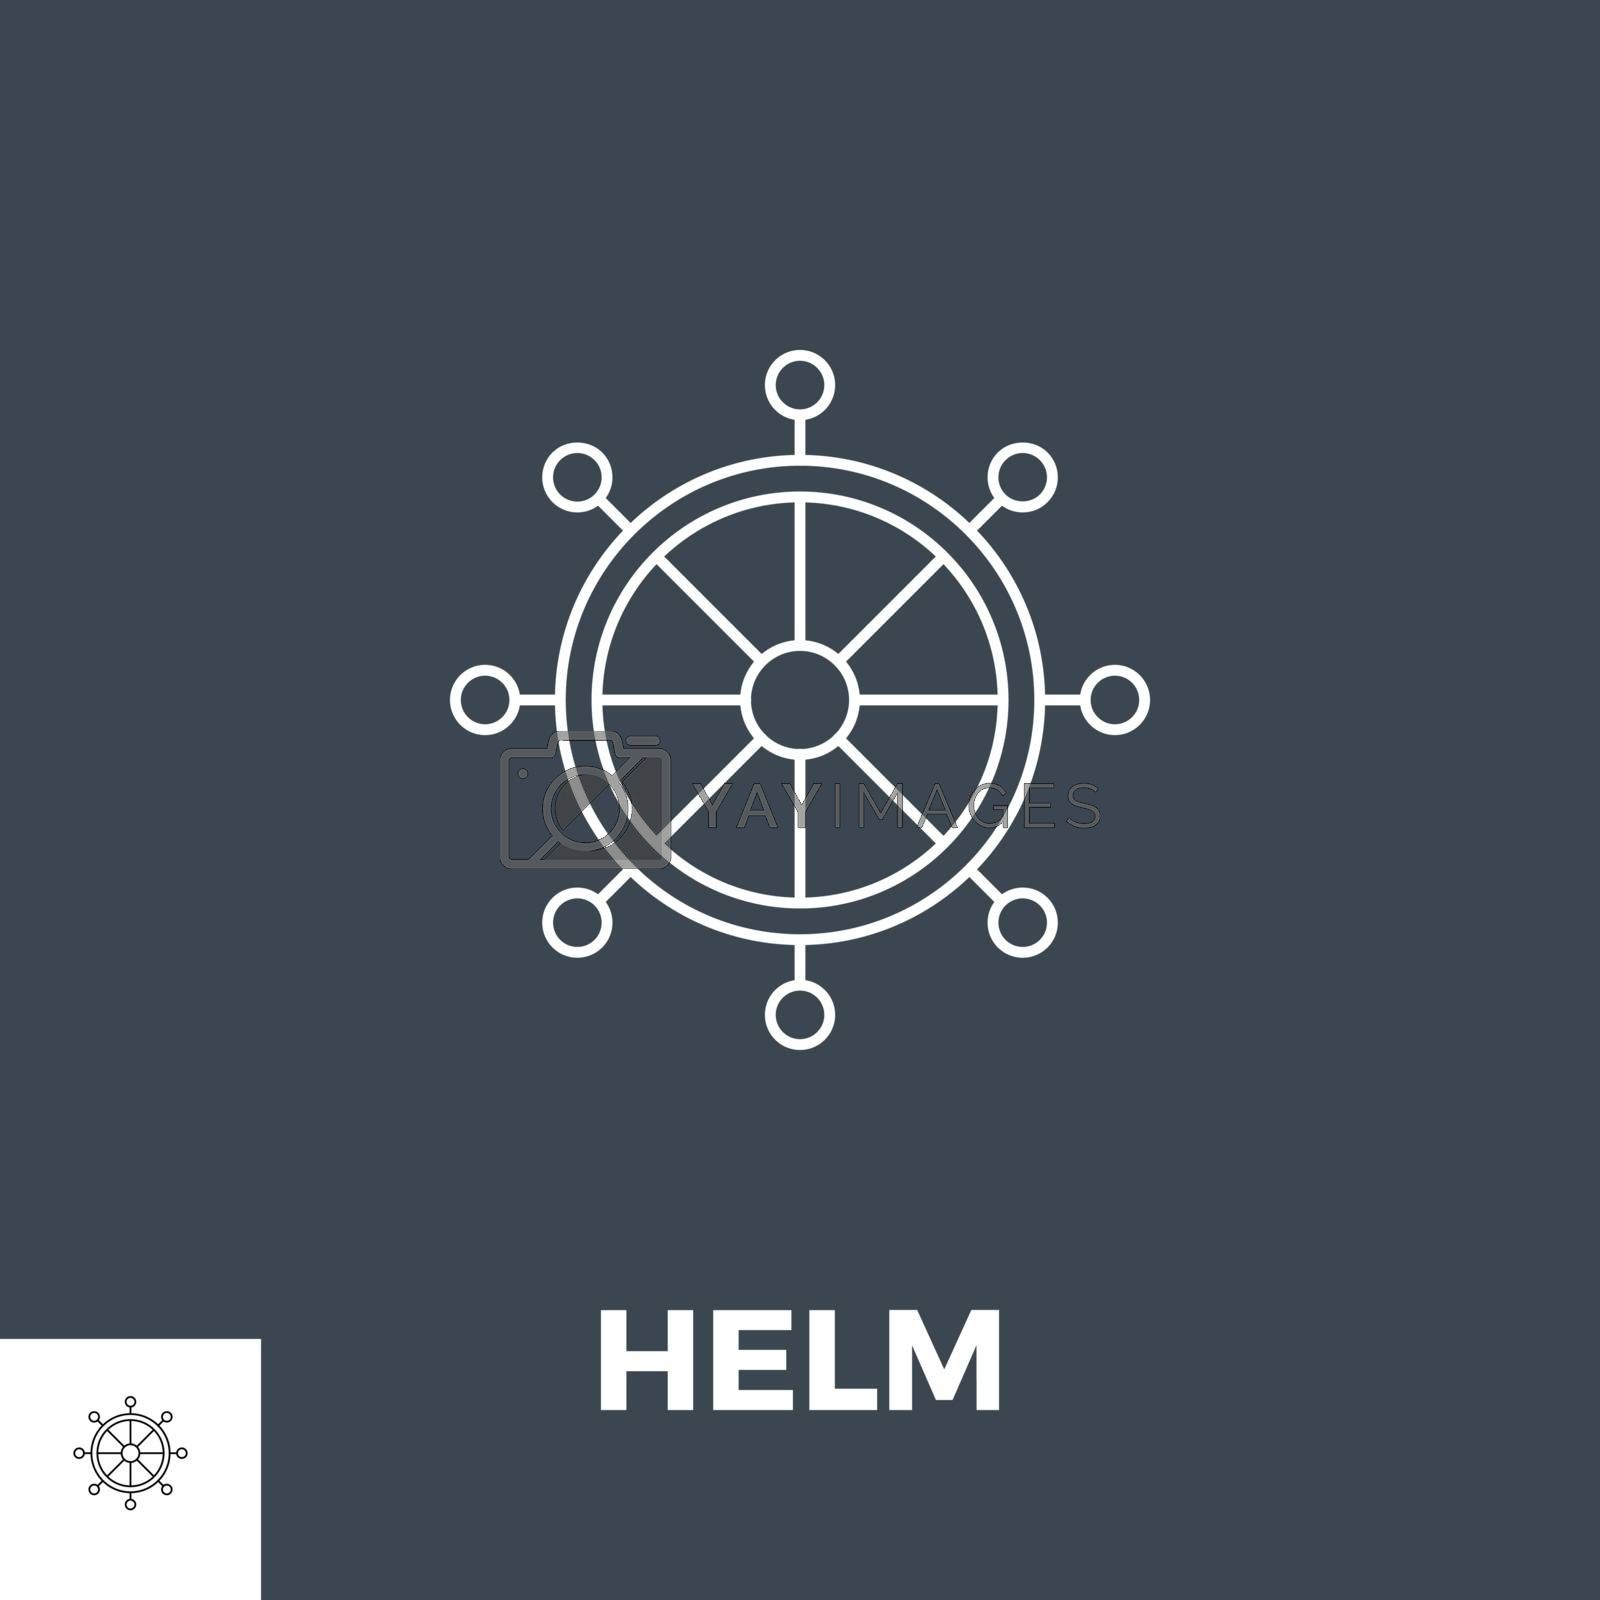 Helm Related Vector Line Icon. Isolated on Black Background.